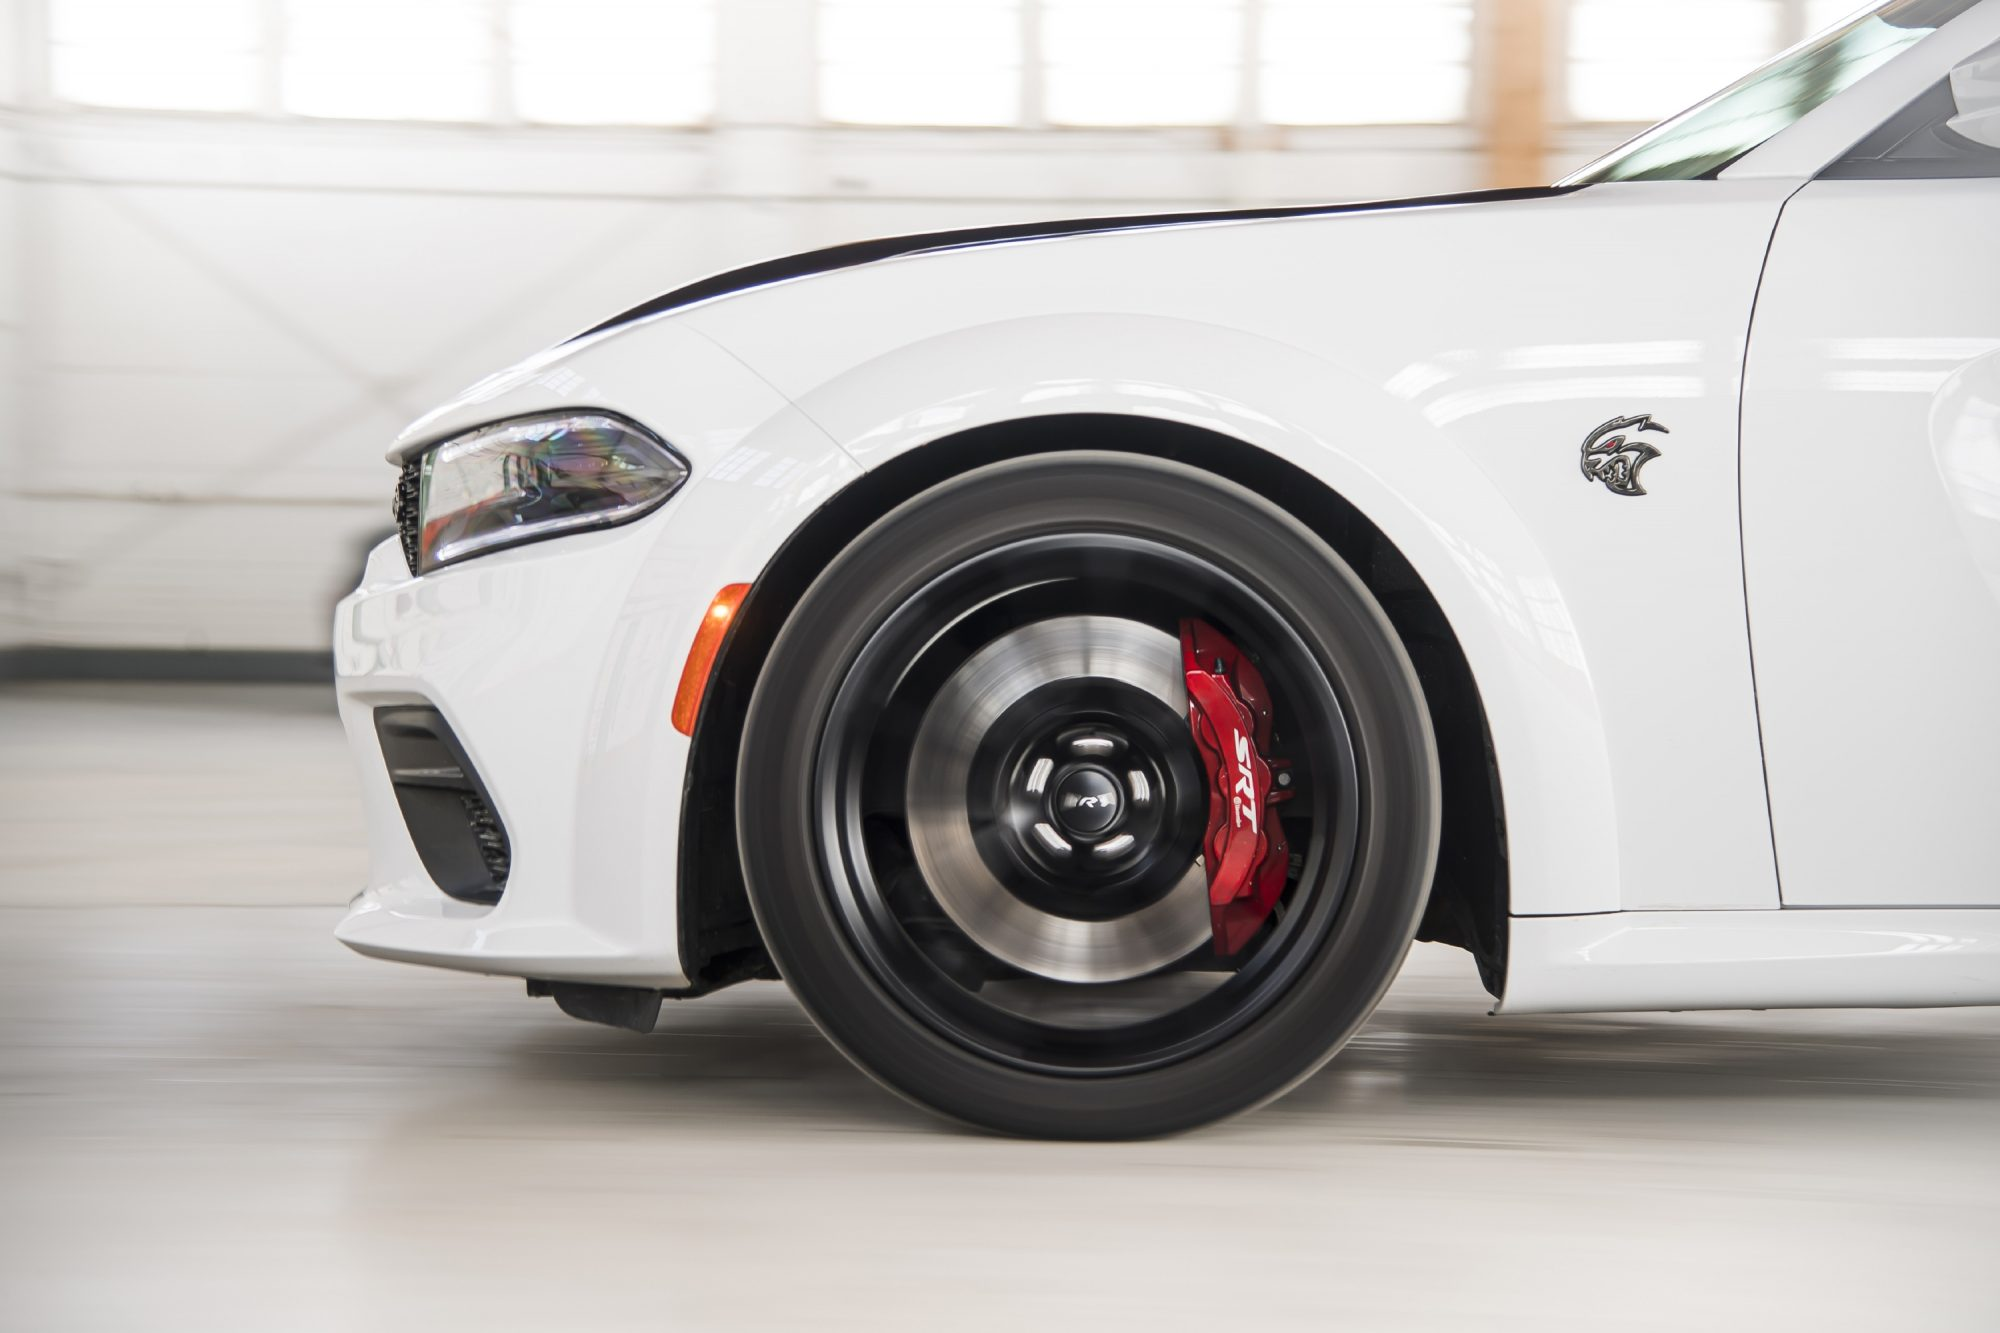 Dodge Charger SRT Hellcat Redeye - 2020 - front wheel / jante avant